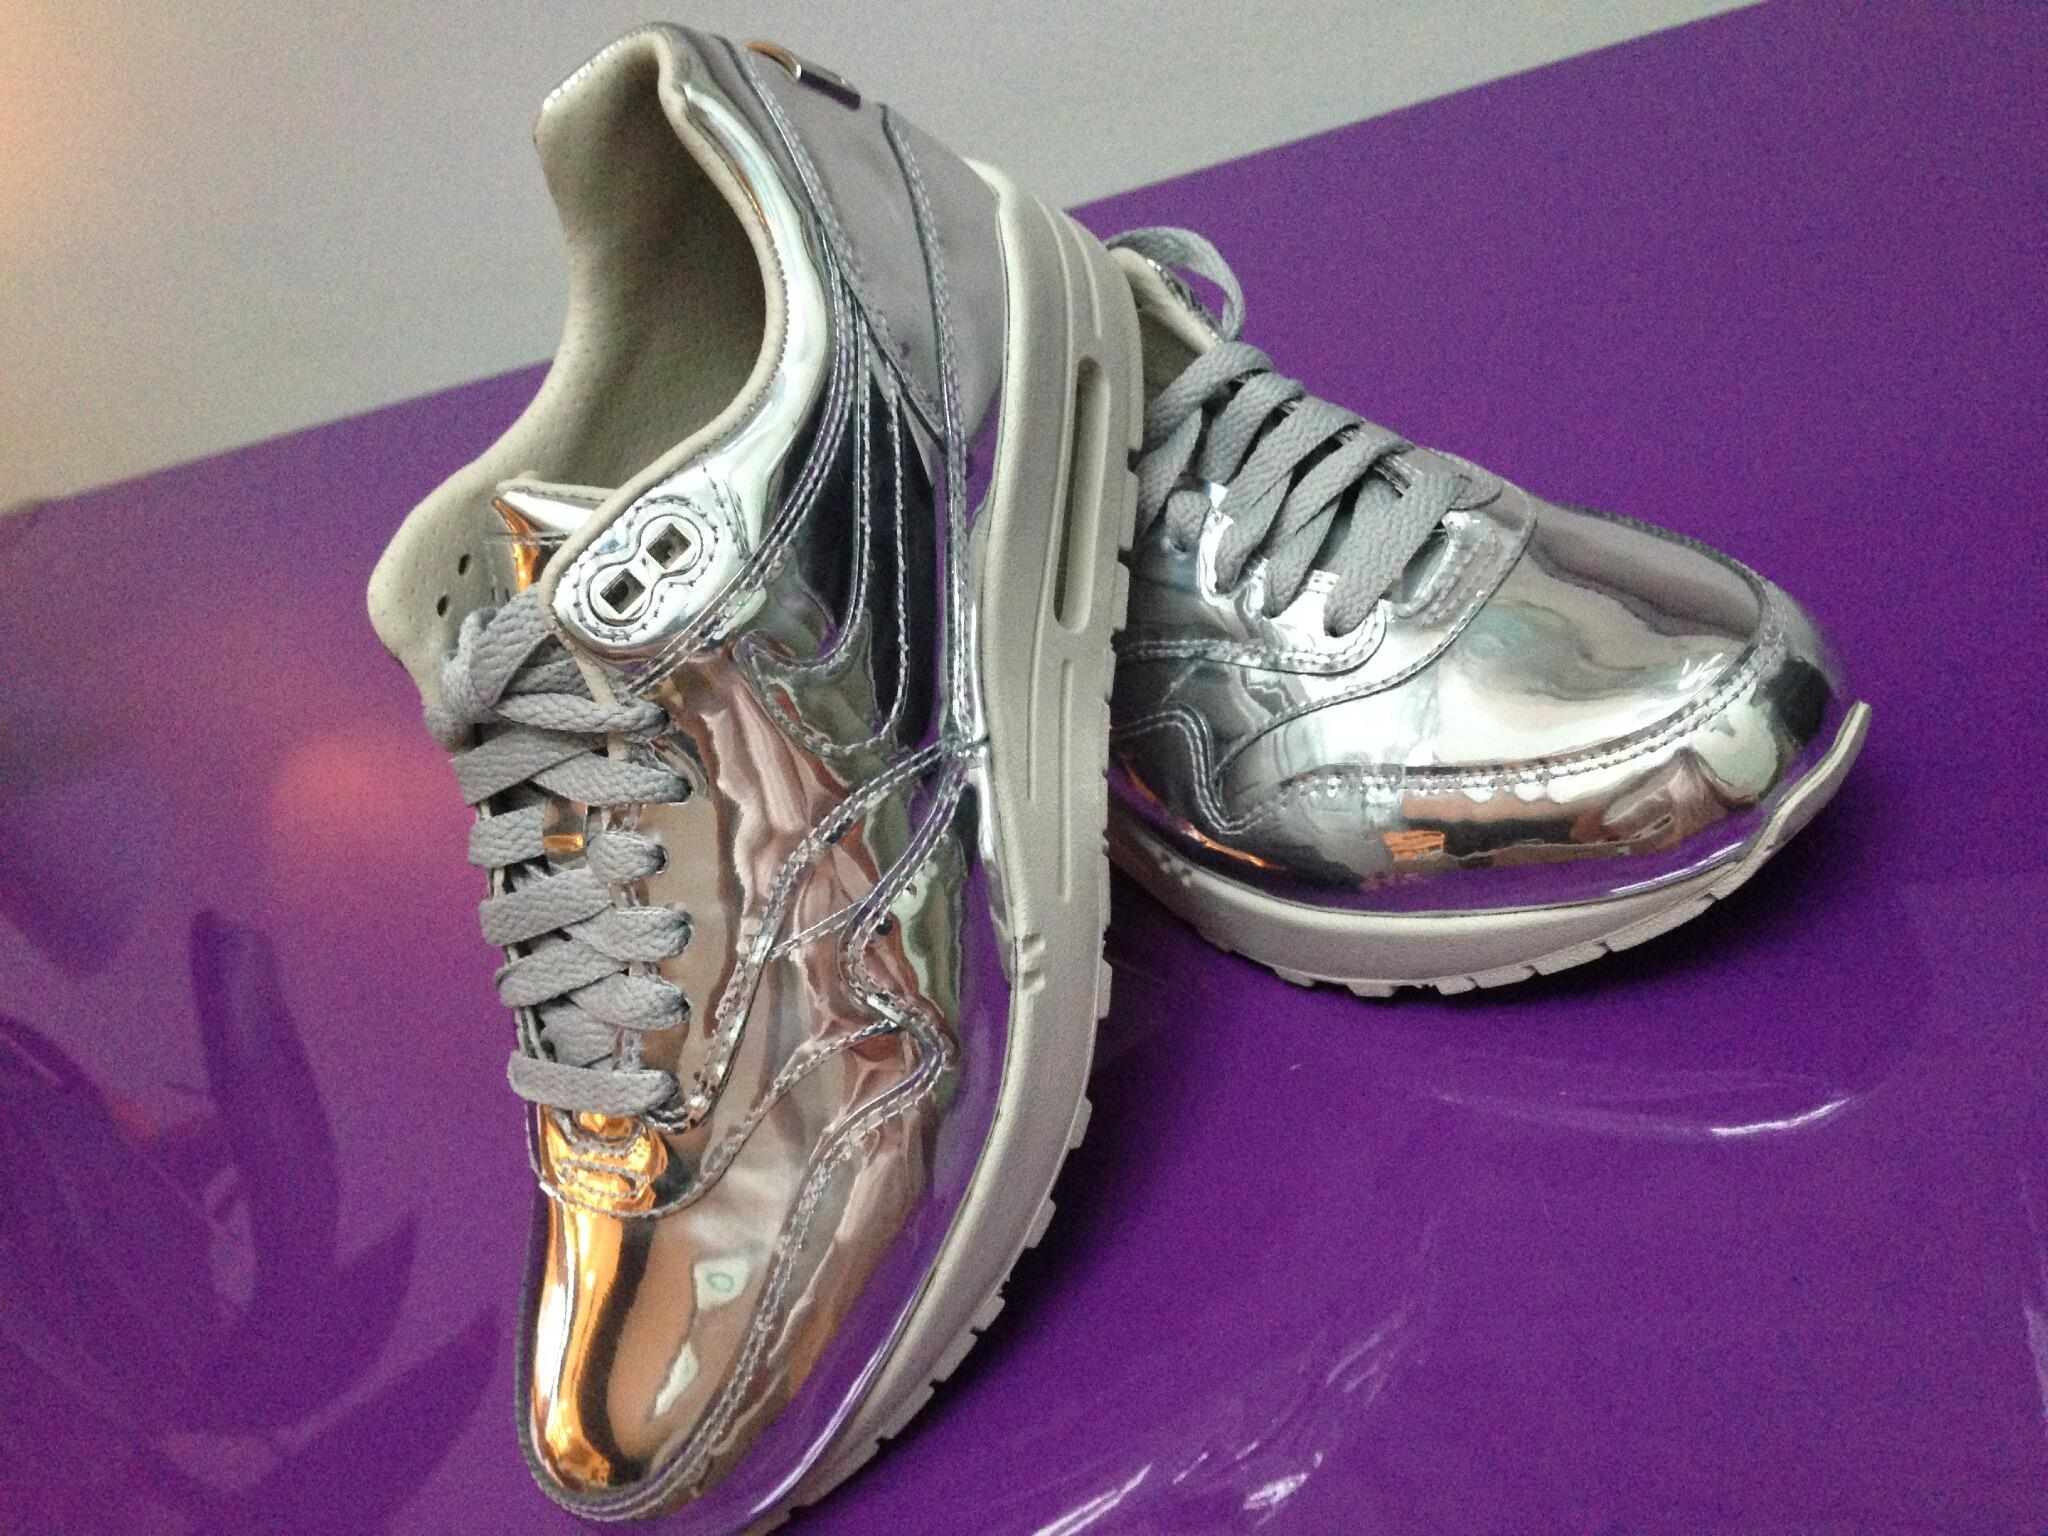 RT @victoriabeckham: Totally obsessed with my new silver Nike Air fashion bunnies, LOVE them!!!! x vb http://t.co/JN0FvgMZWt